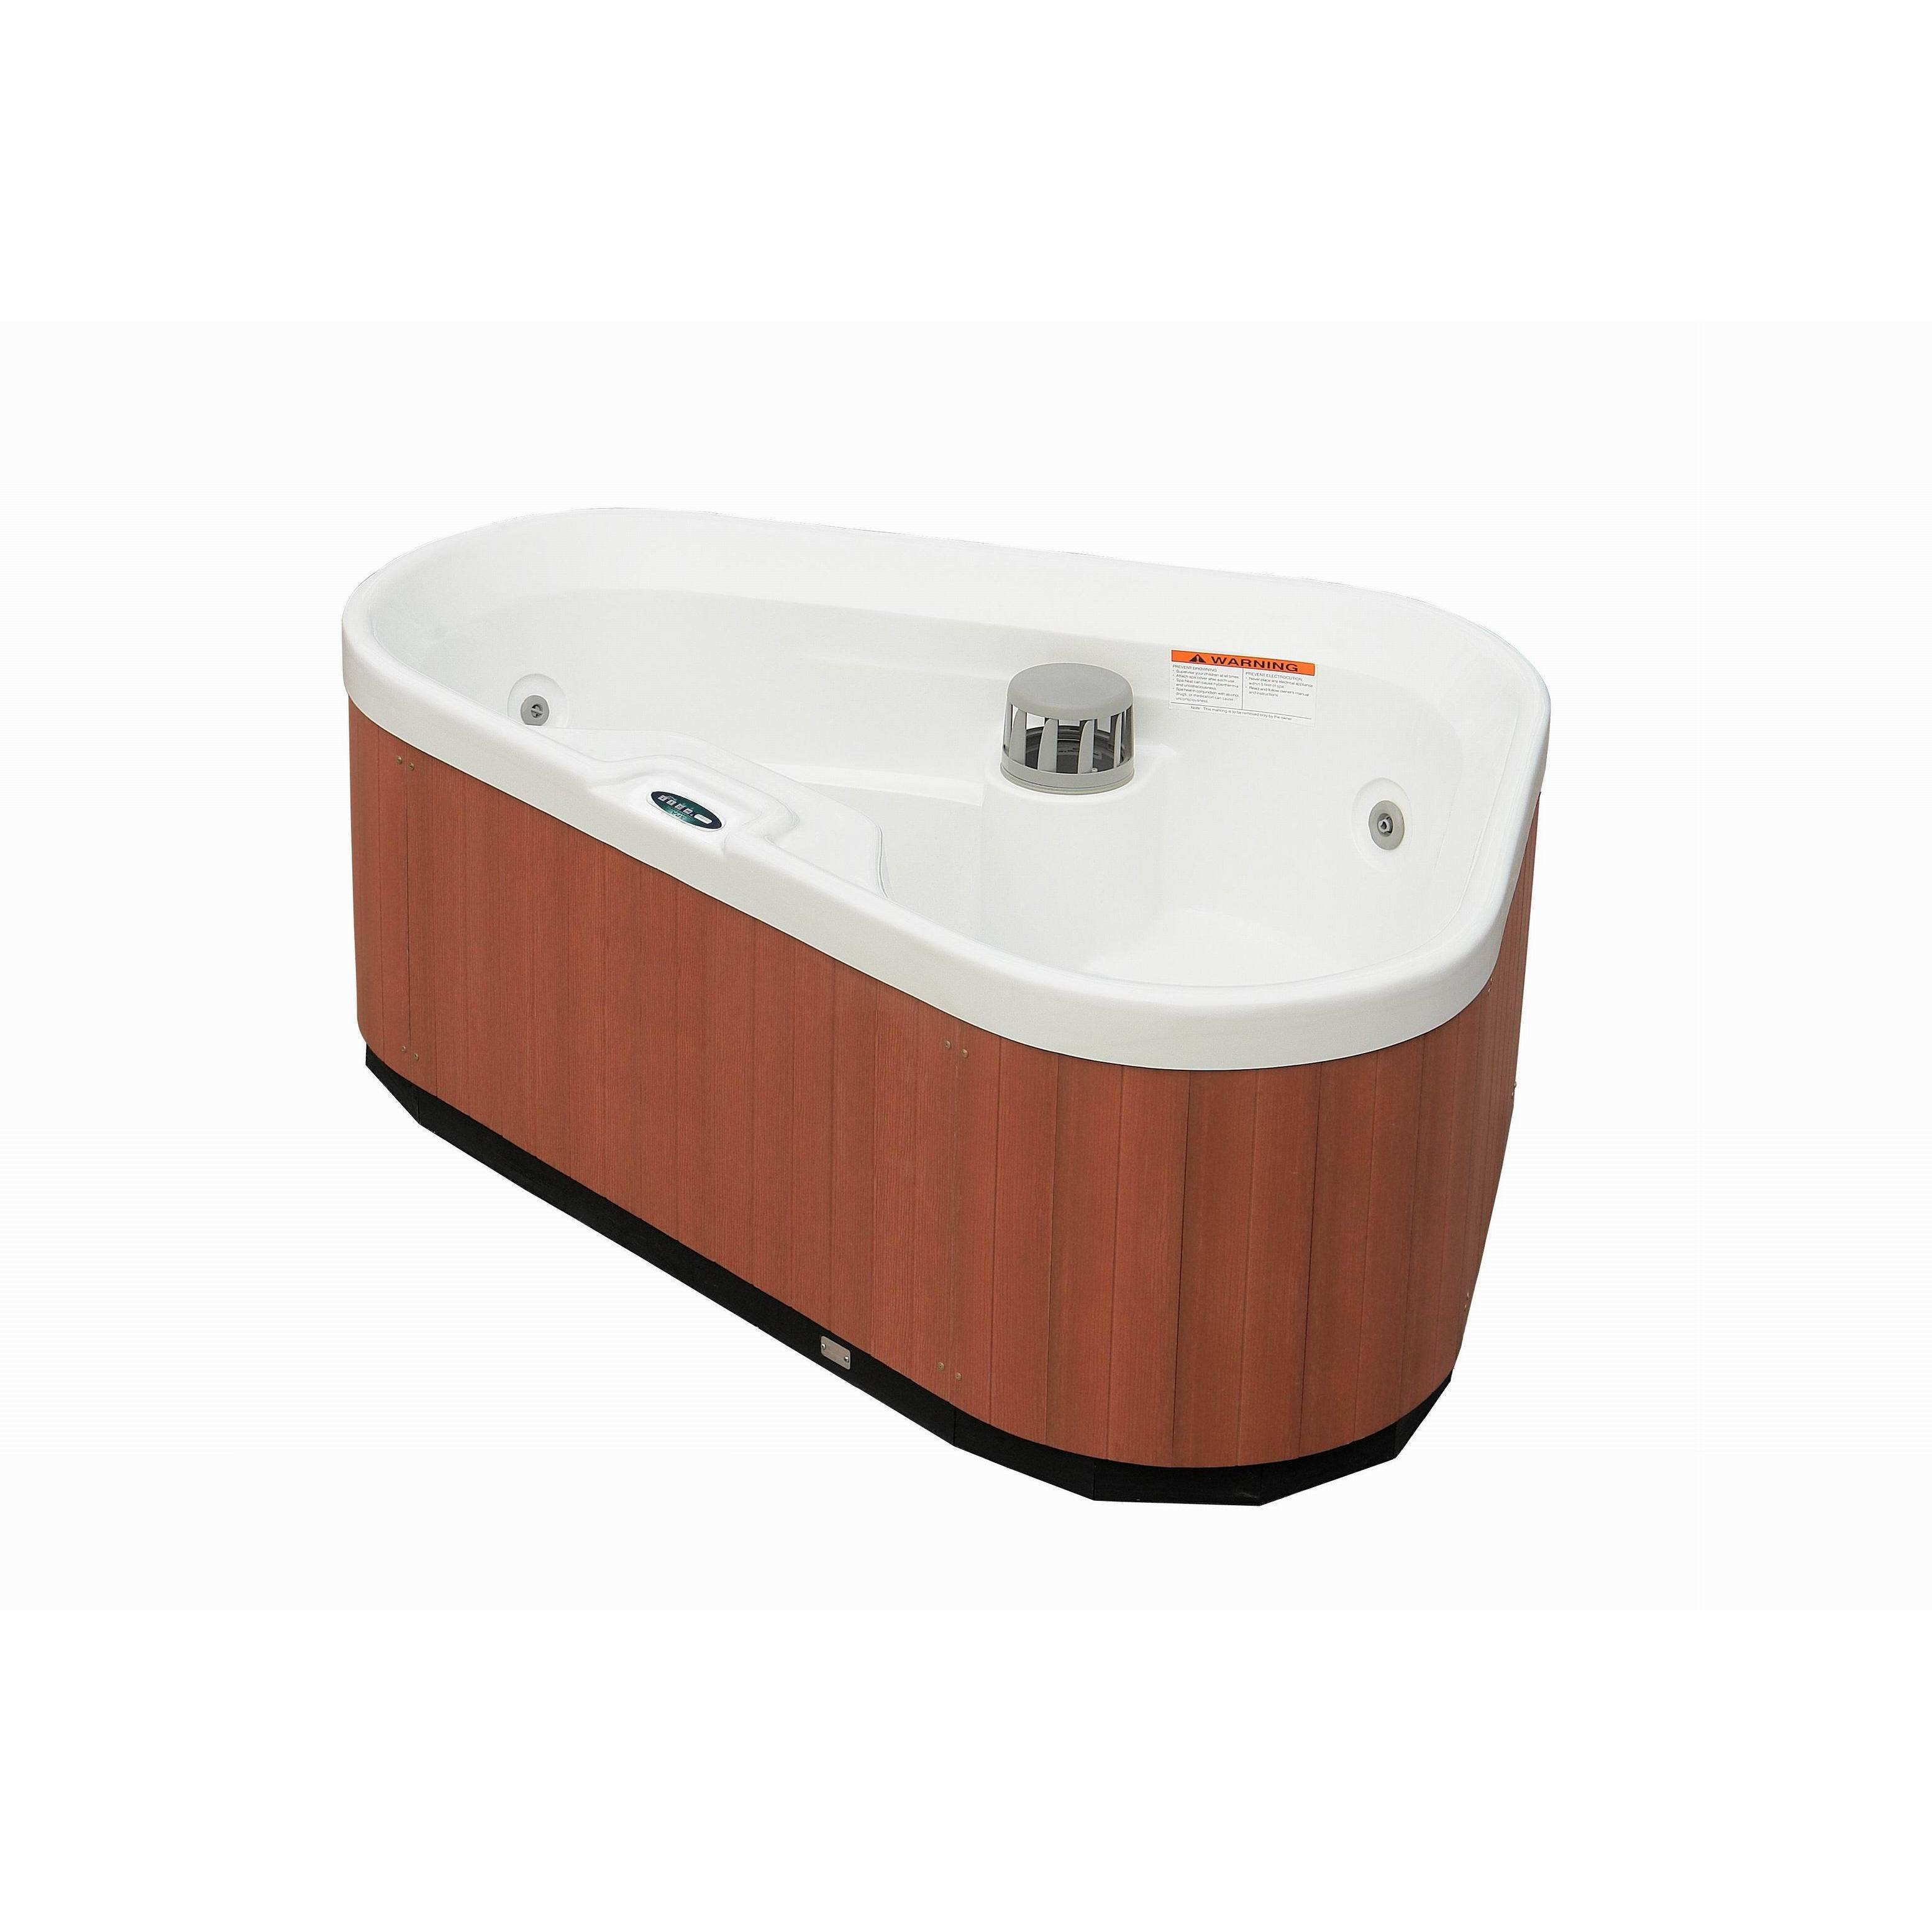 Aston White 3-person 7-jet 110V Hot Tub at Sears.com